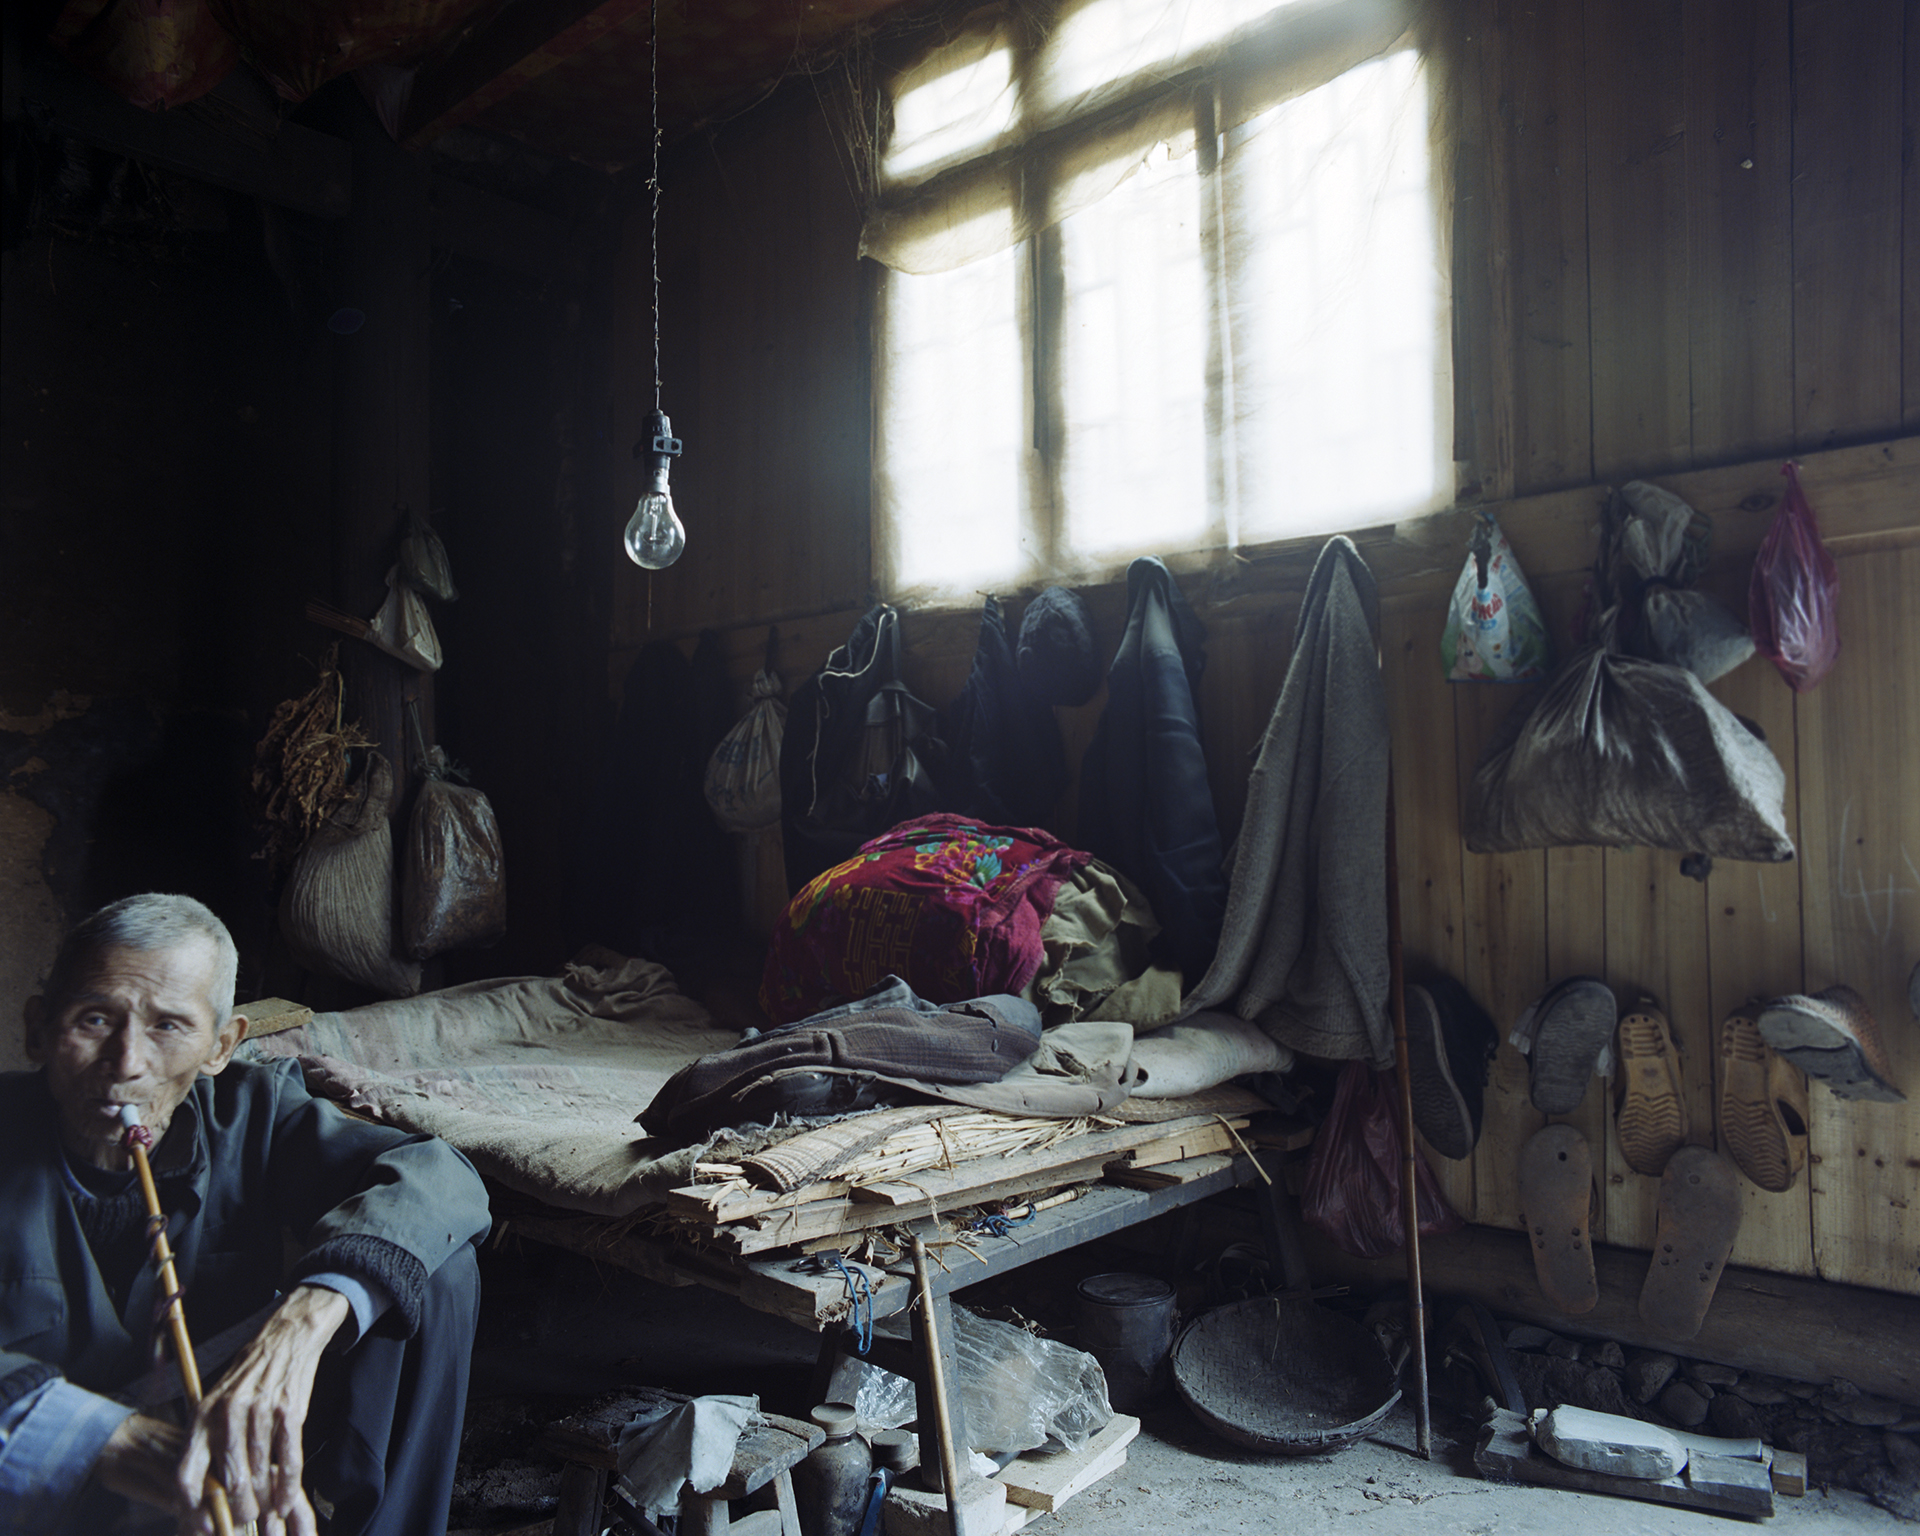 Not everybody in Zhaoxing could reap the money from tourism. In 2005 many older people still live like this.